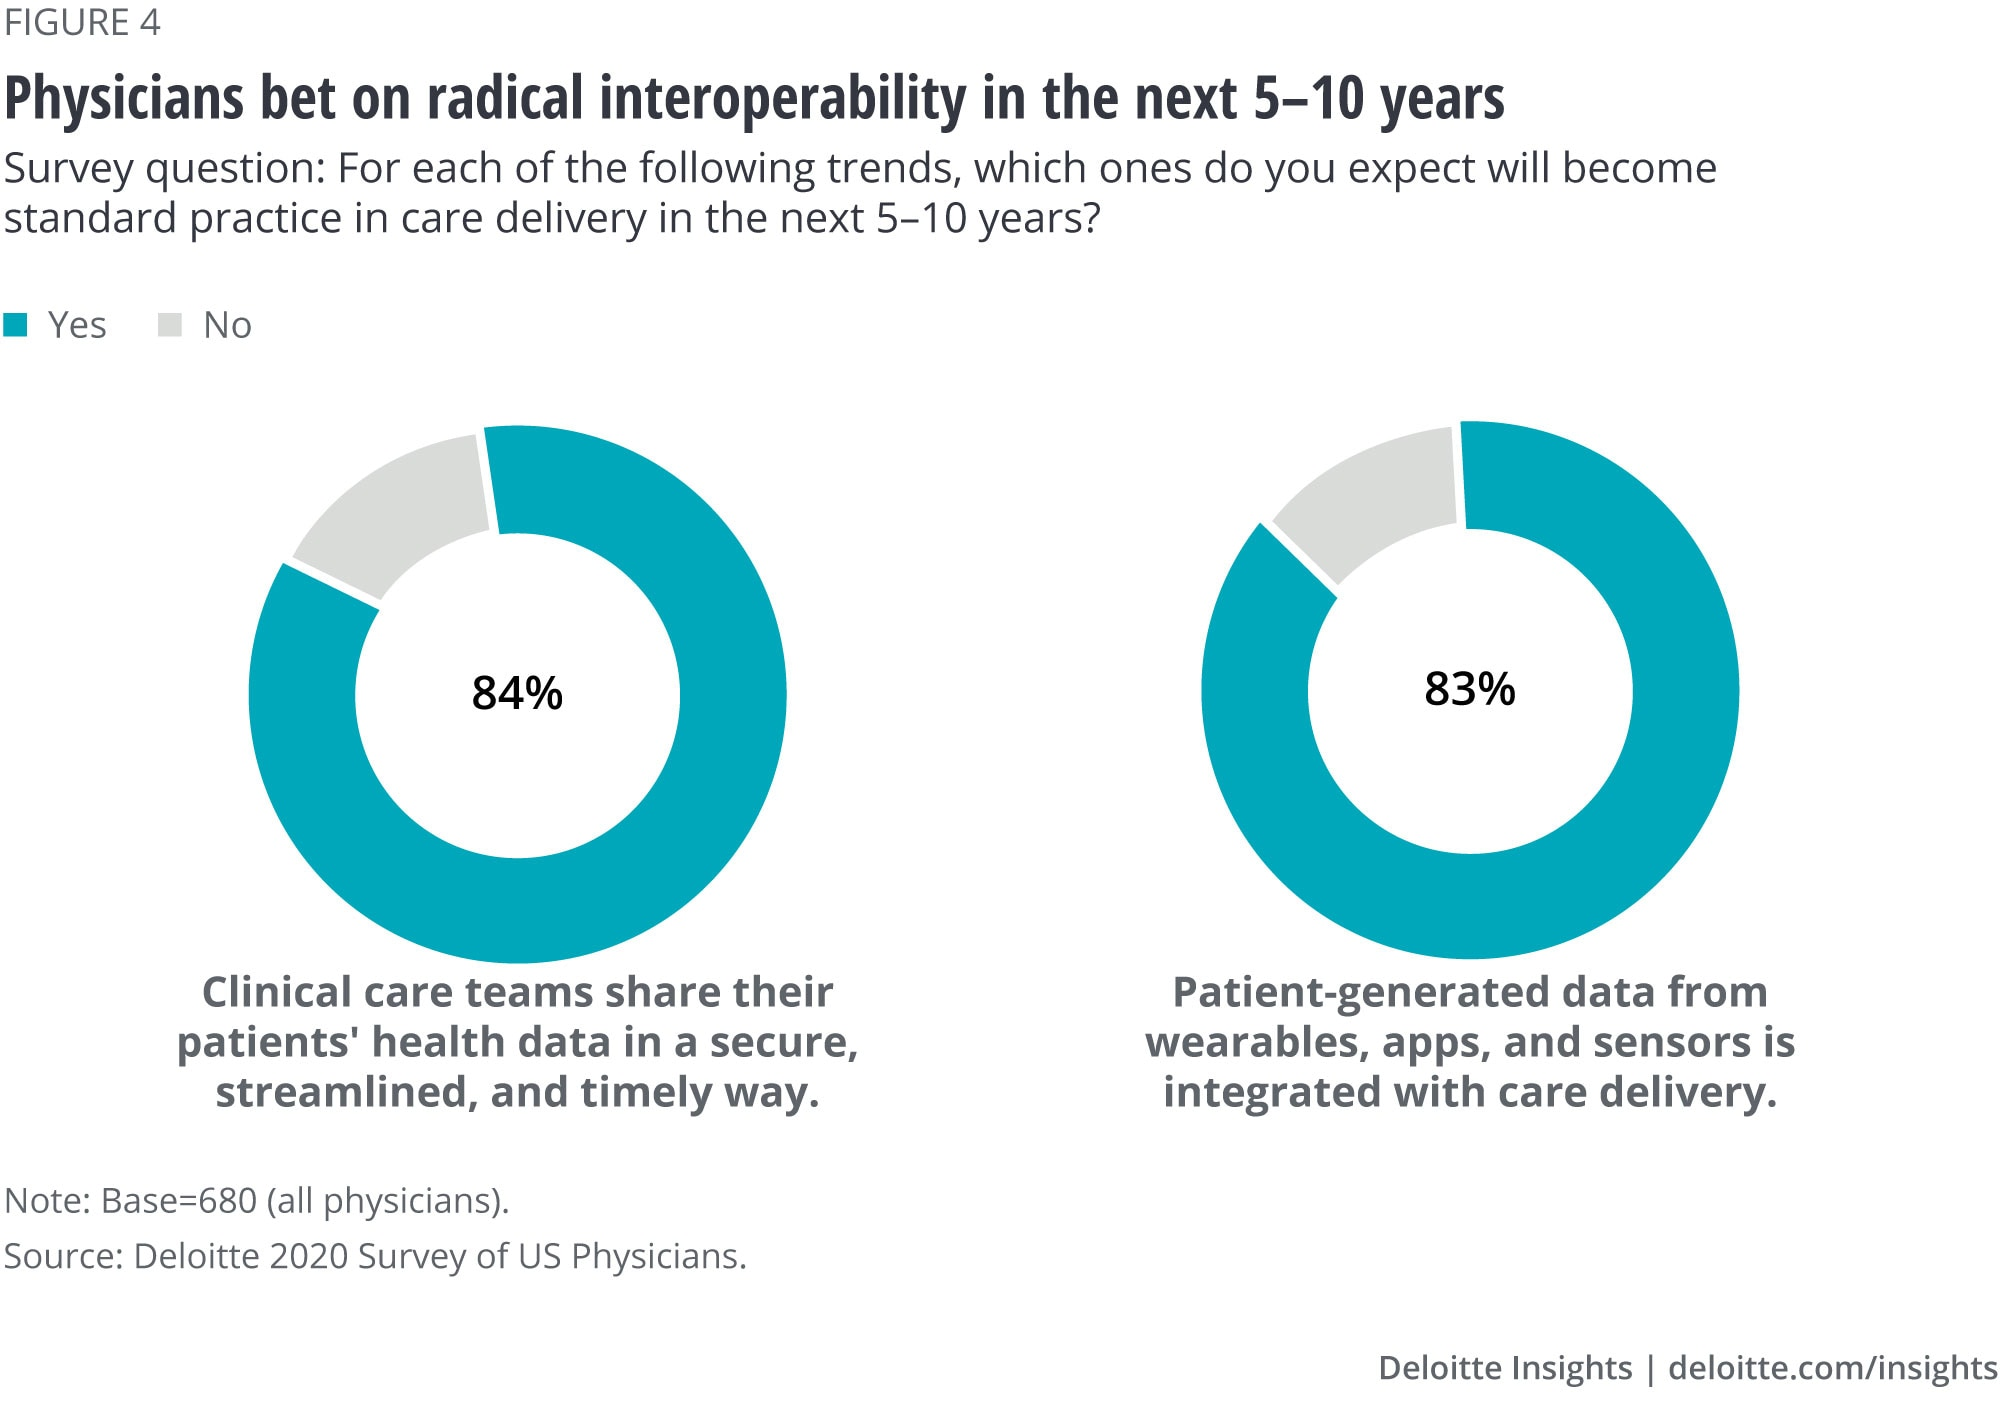 Physicians bet on radical interoperability in the next five to 10 years